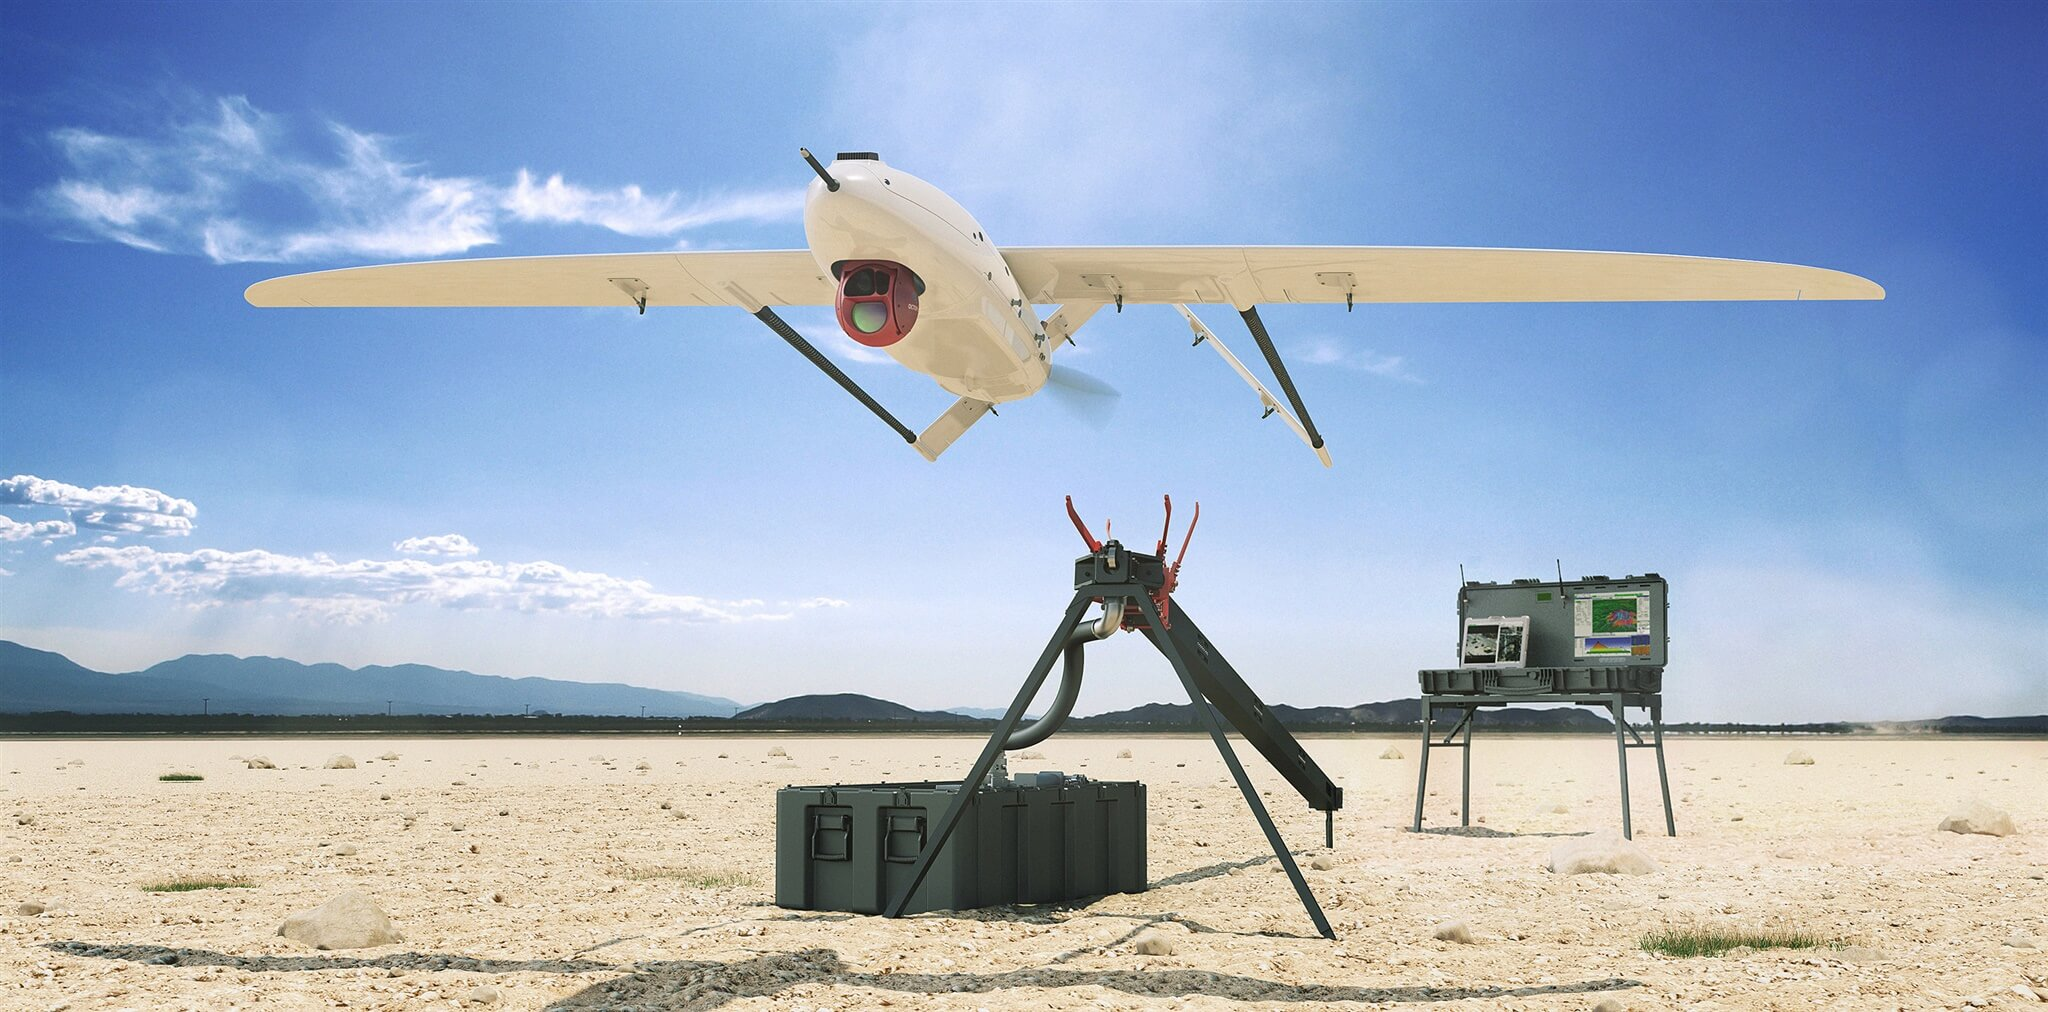 unmmaned aerial vehicles drones essay Let us write or edit the essay on your topic evaluate the current application of unmanned aerial vehicles (uav) discuss the potential future applications of uav technology based on current issues with a personal 20% discount.